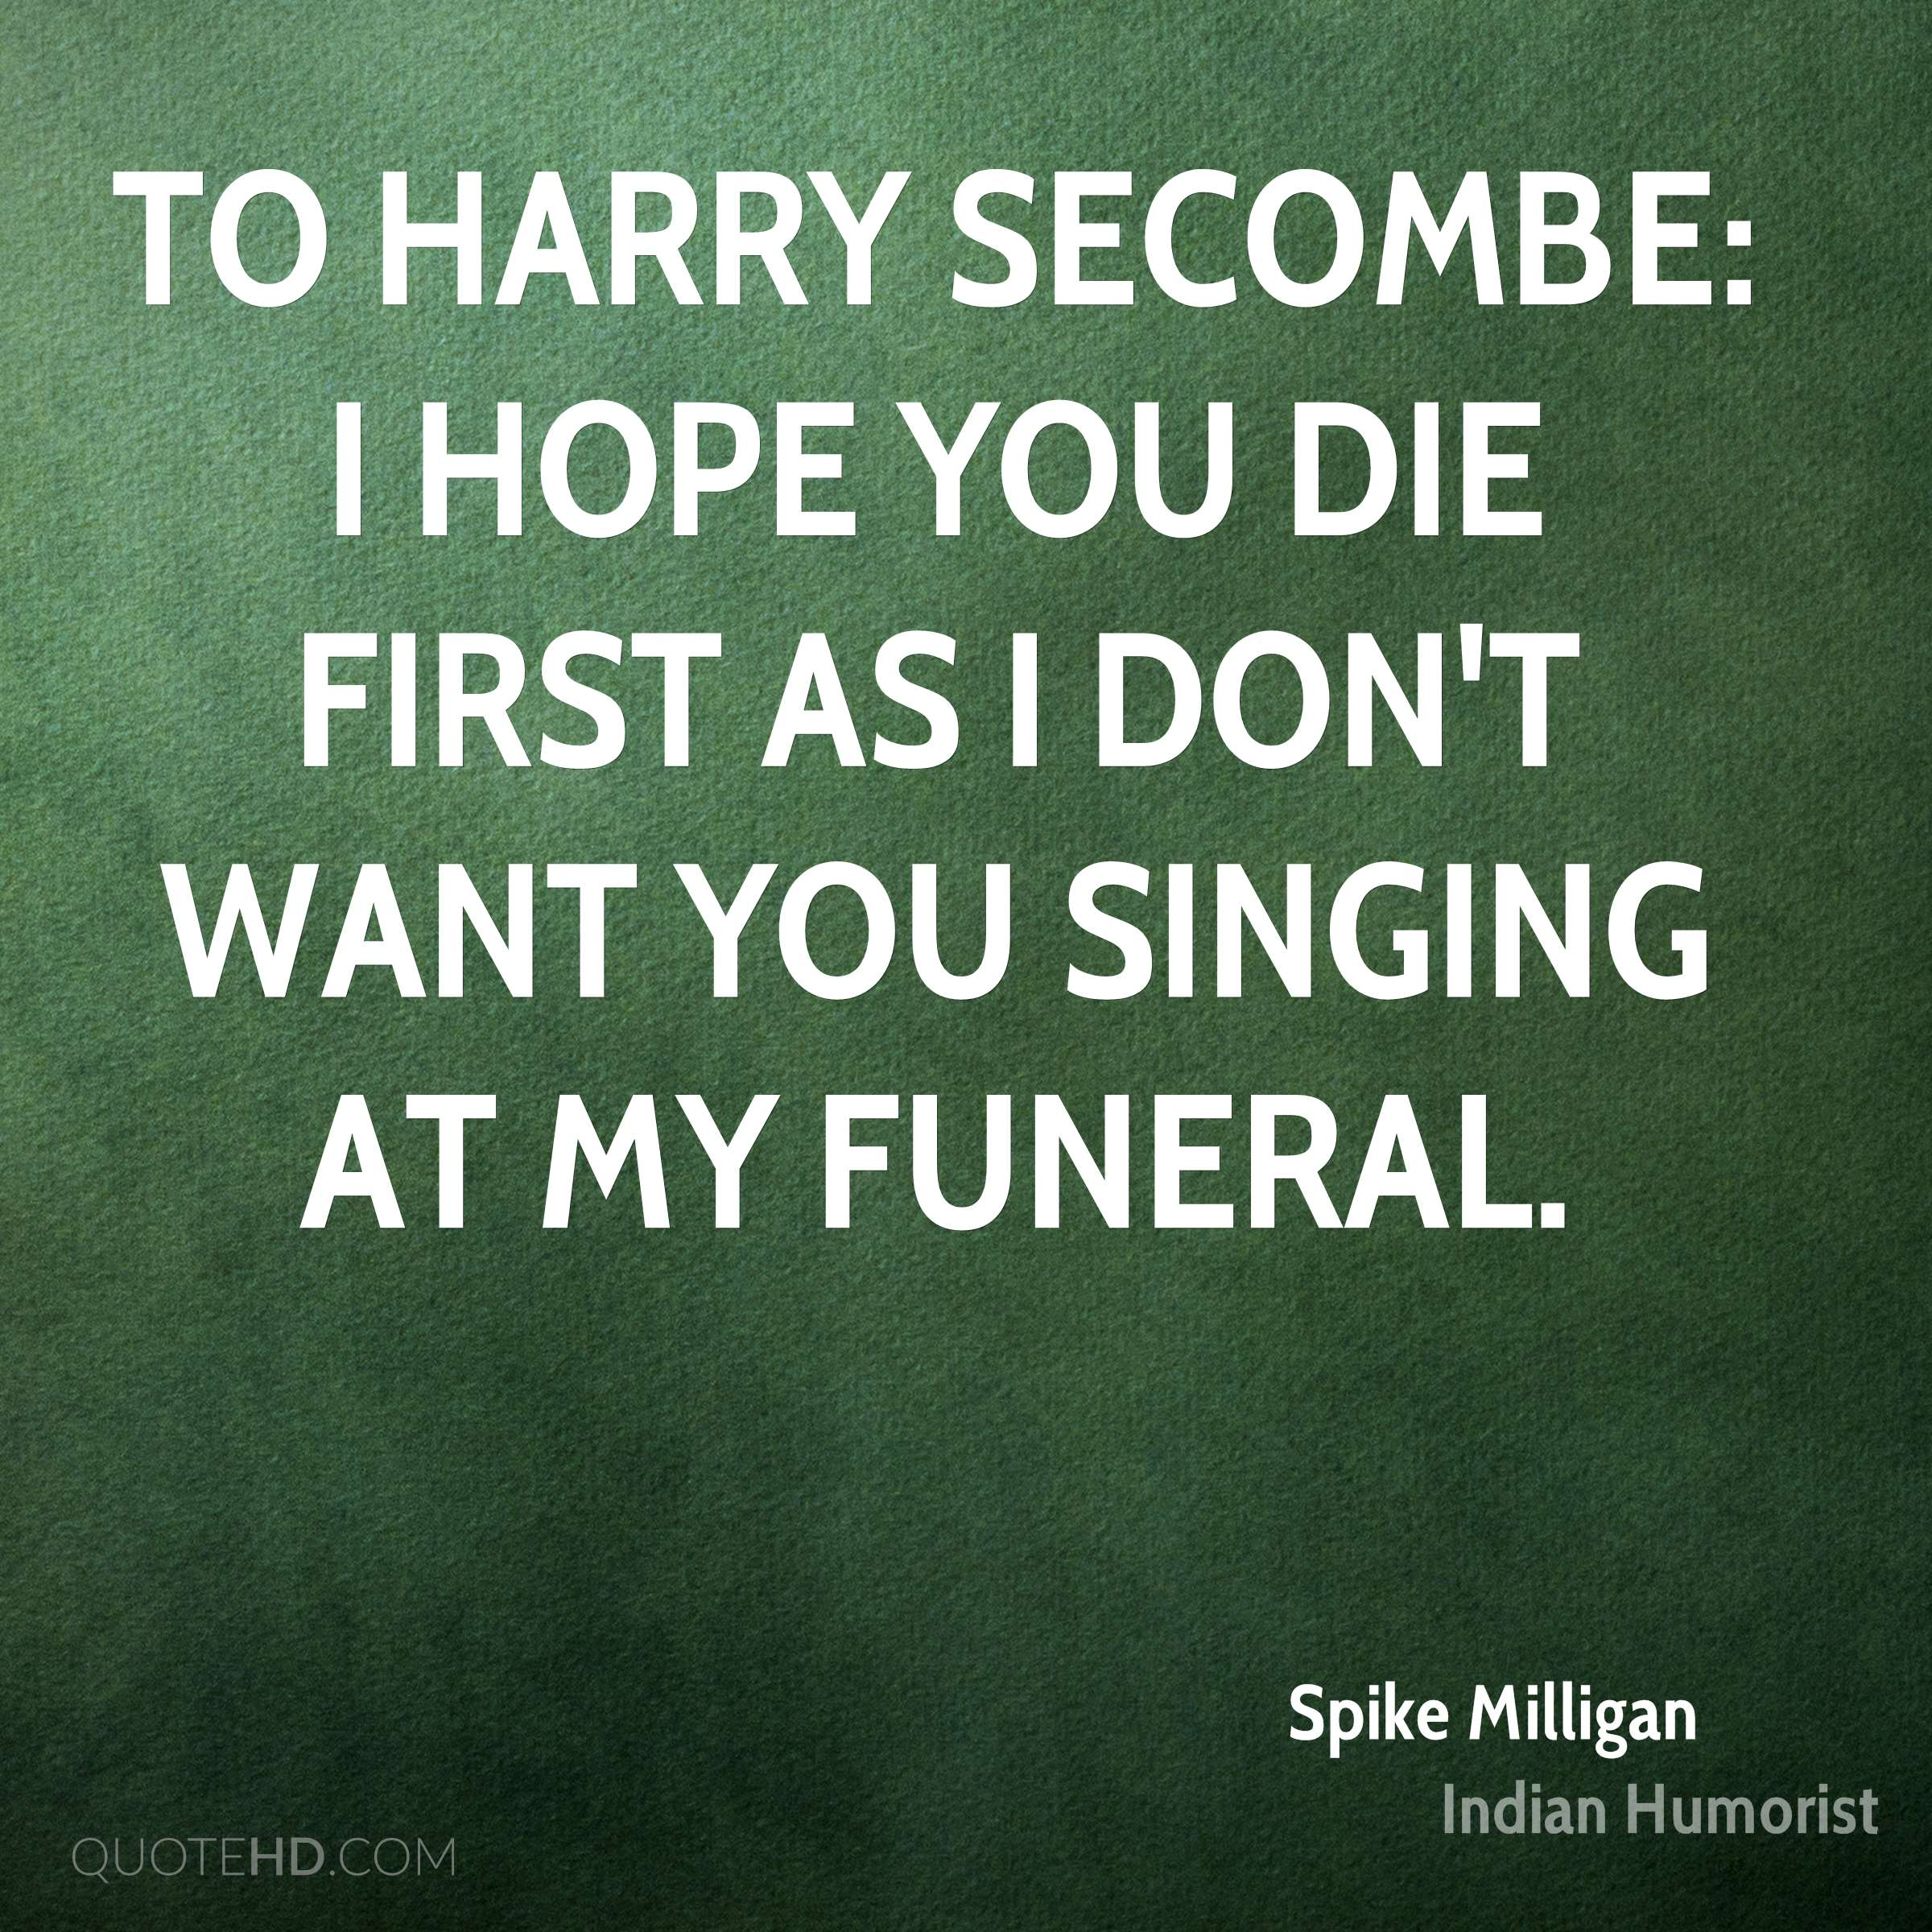 To Harry Secombe: I hope you die first as I don't want you singing at my funeral.